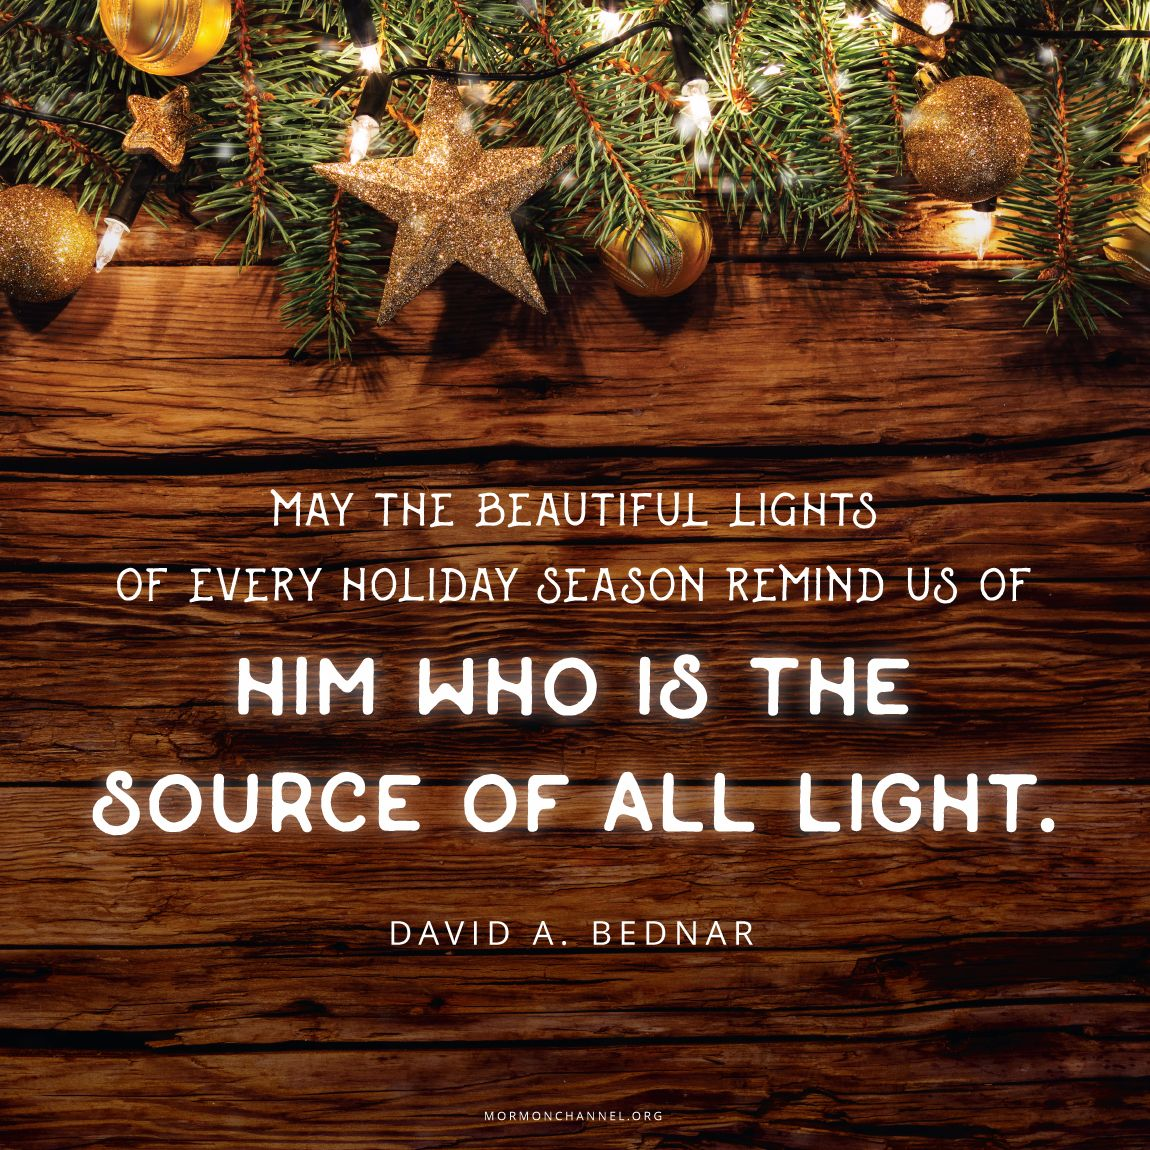 May The Lights Of The Season Remind Us Lds Christmas Quotes Christmas Lights Quotes Christmas Quotes